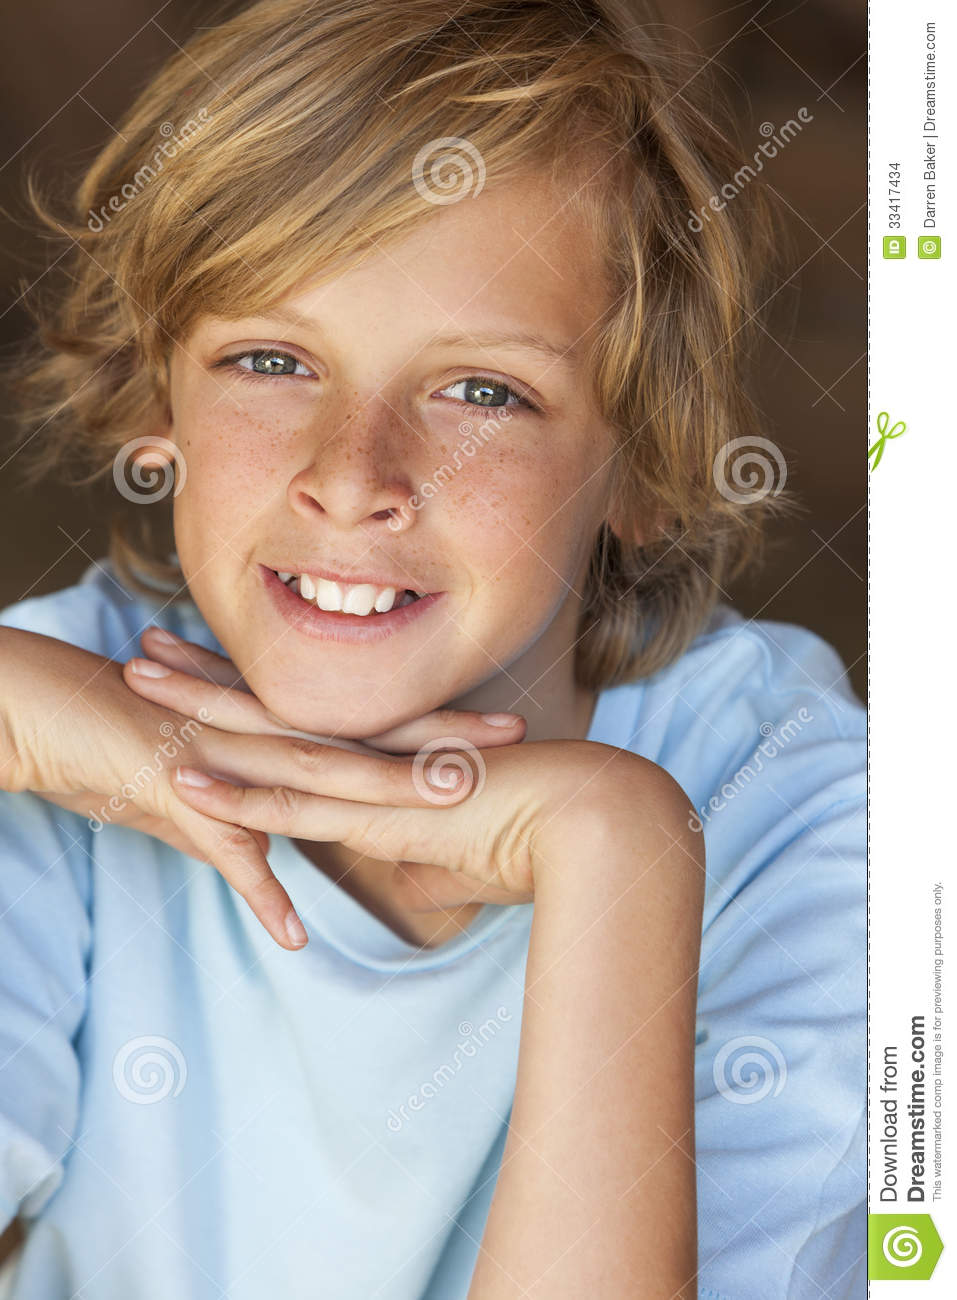 Young Happy Blond Boy Child Smiling Stock Images - Image: 33417434